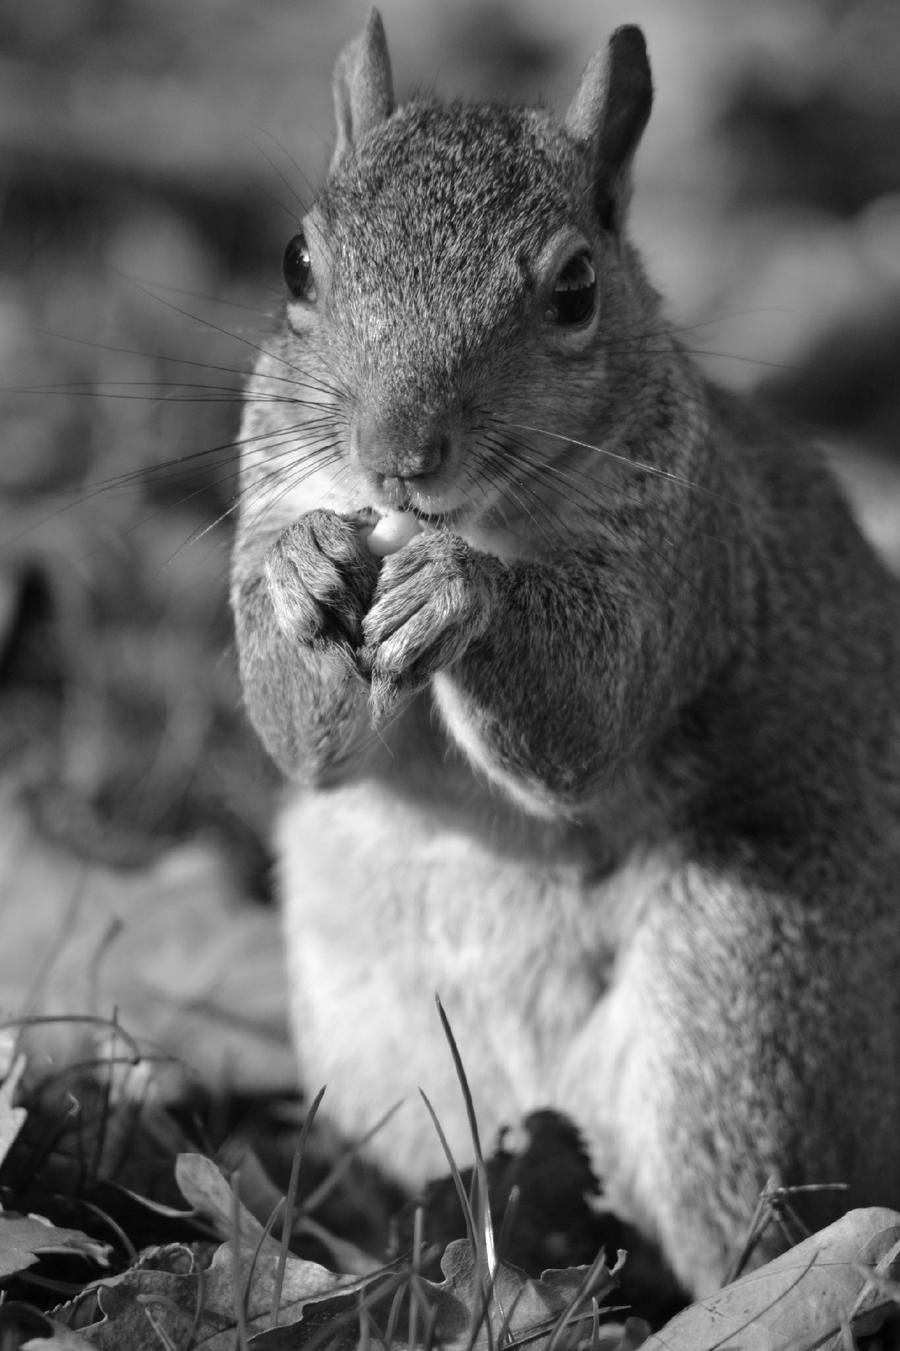 black_and_white_squirrel__by_kerrielbrown_d6t0hh9-fullview.jpg